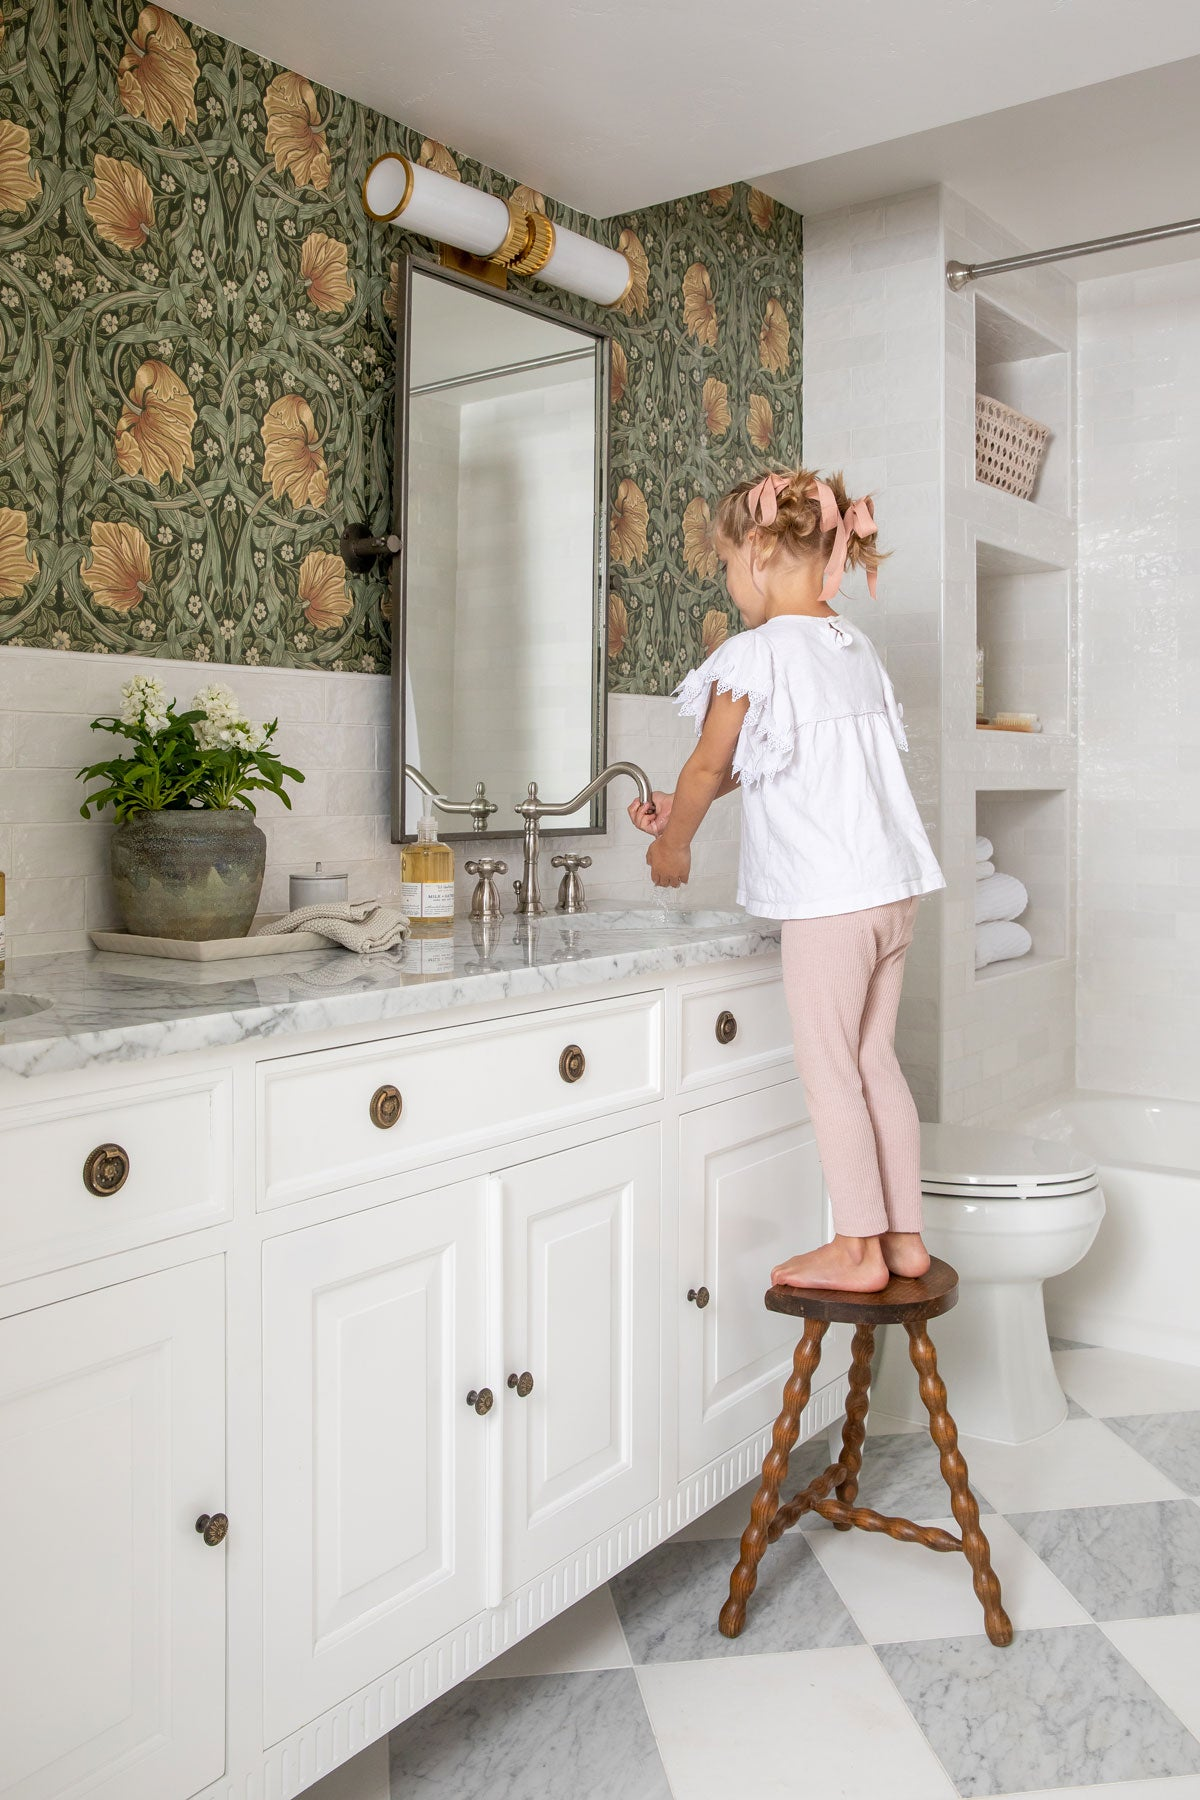 Basement Bathroom for Kids with White and Gray Farmhouse Decor